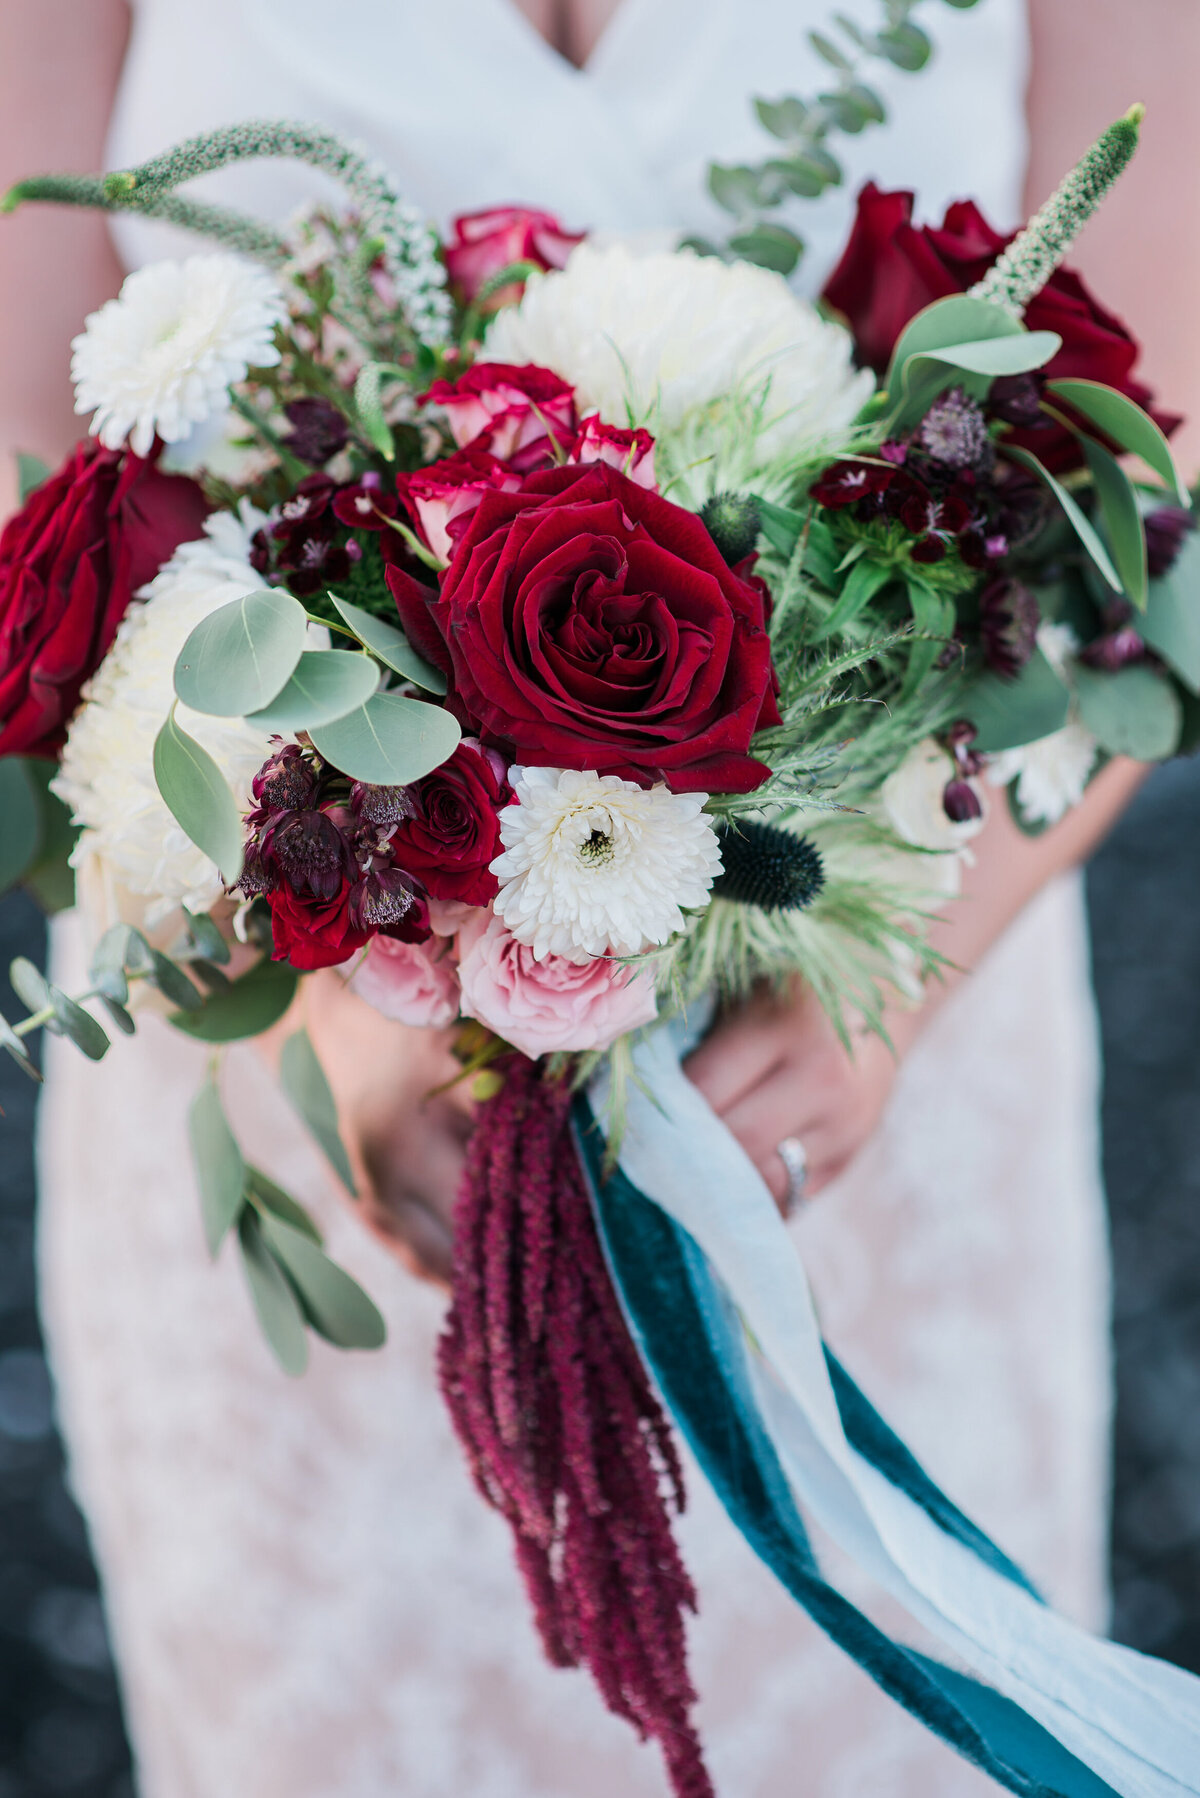 bridal bouquet with red roses and blue ribbon